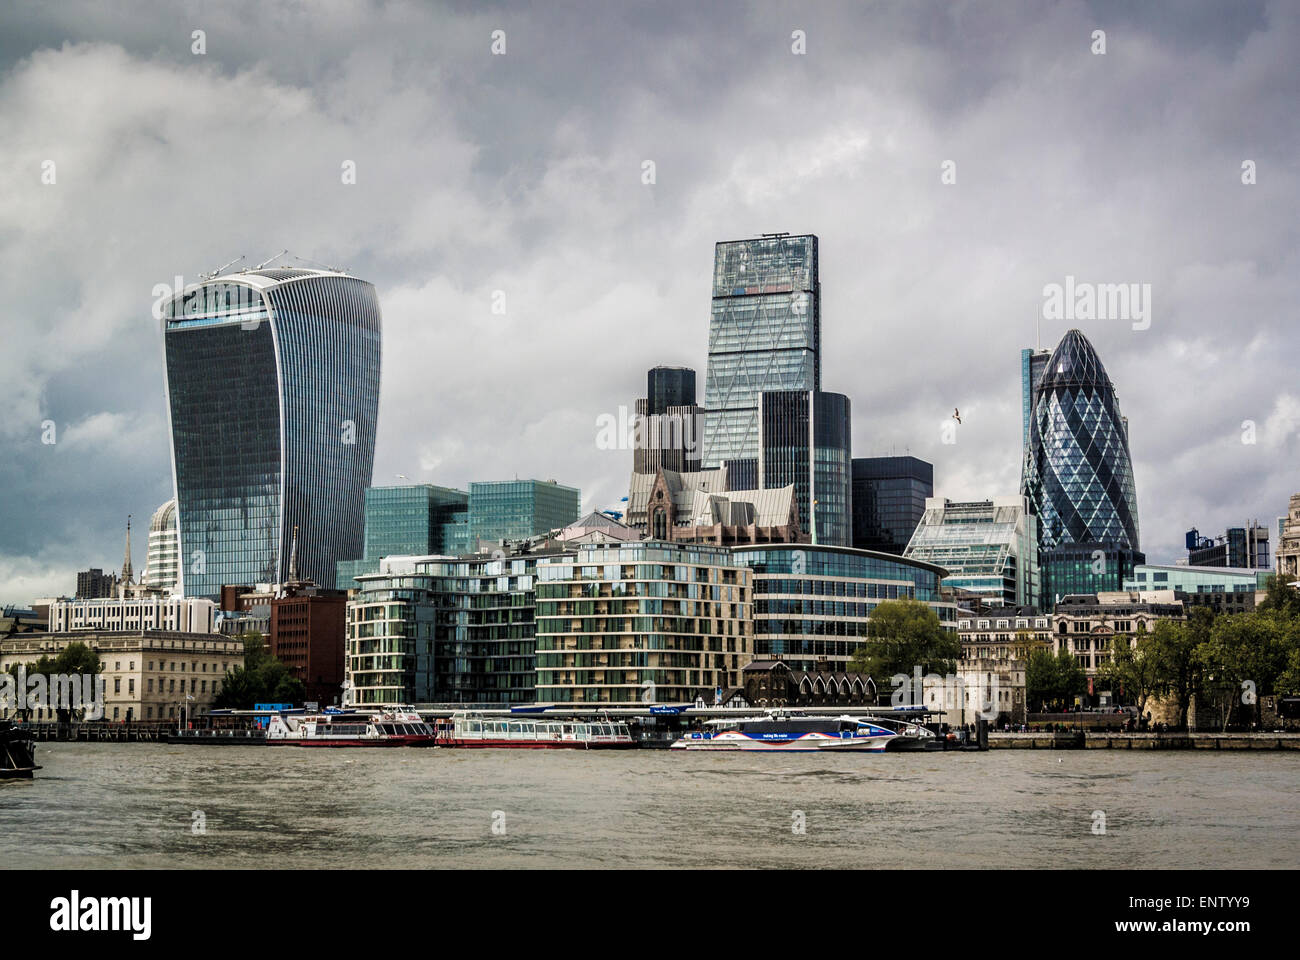 The Gherkin, cheesegrater and Walkie-Talkie building viewed from south side of river Thames at Tower Bridge - Stock Image